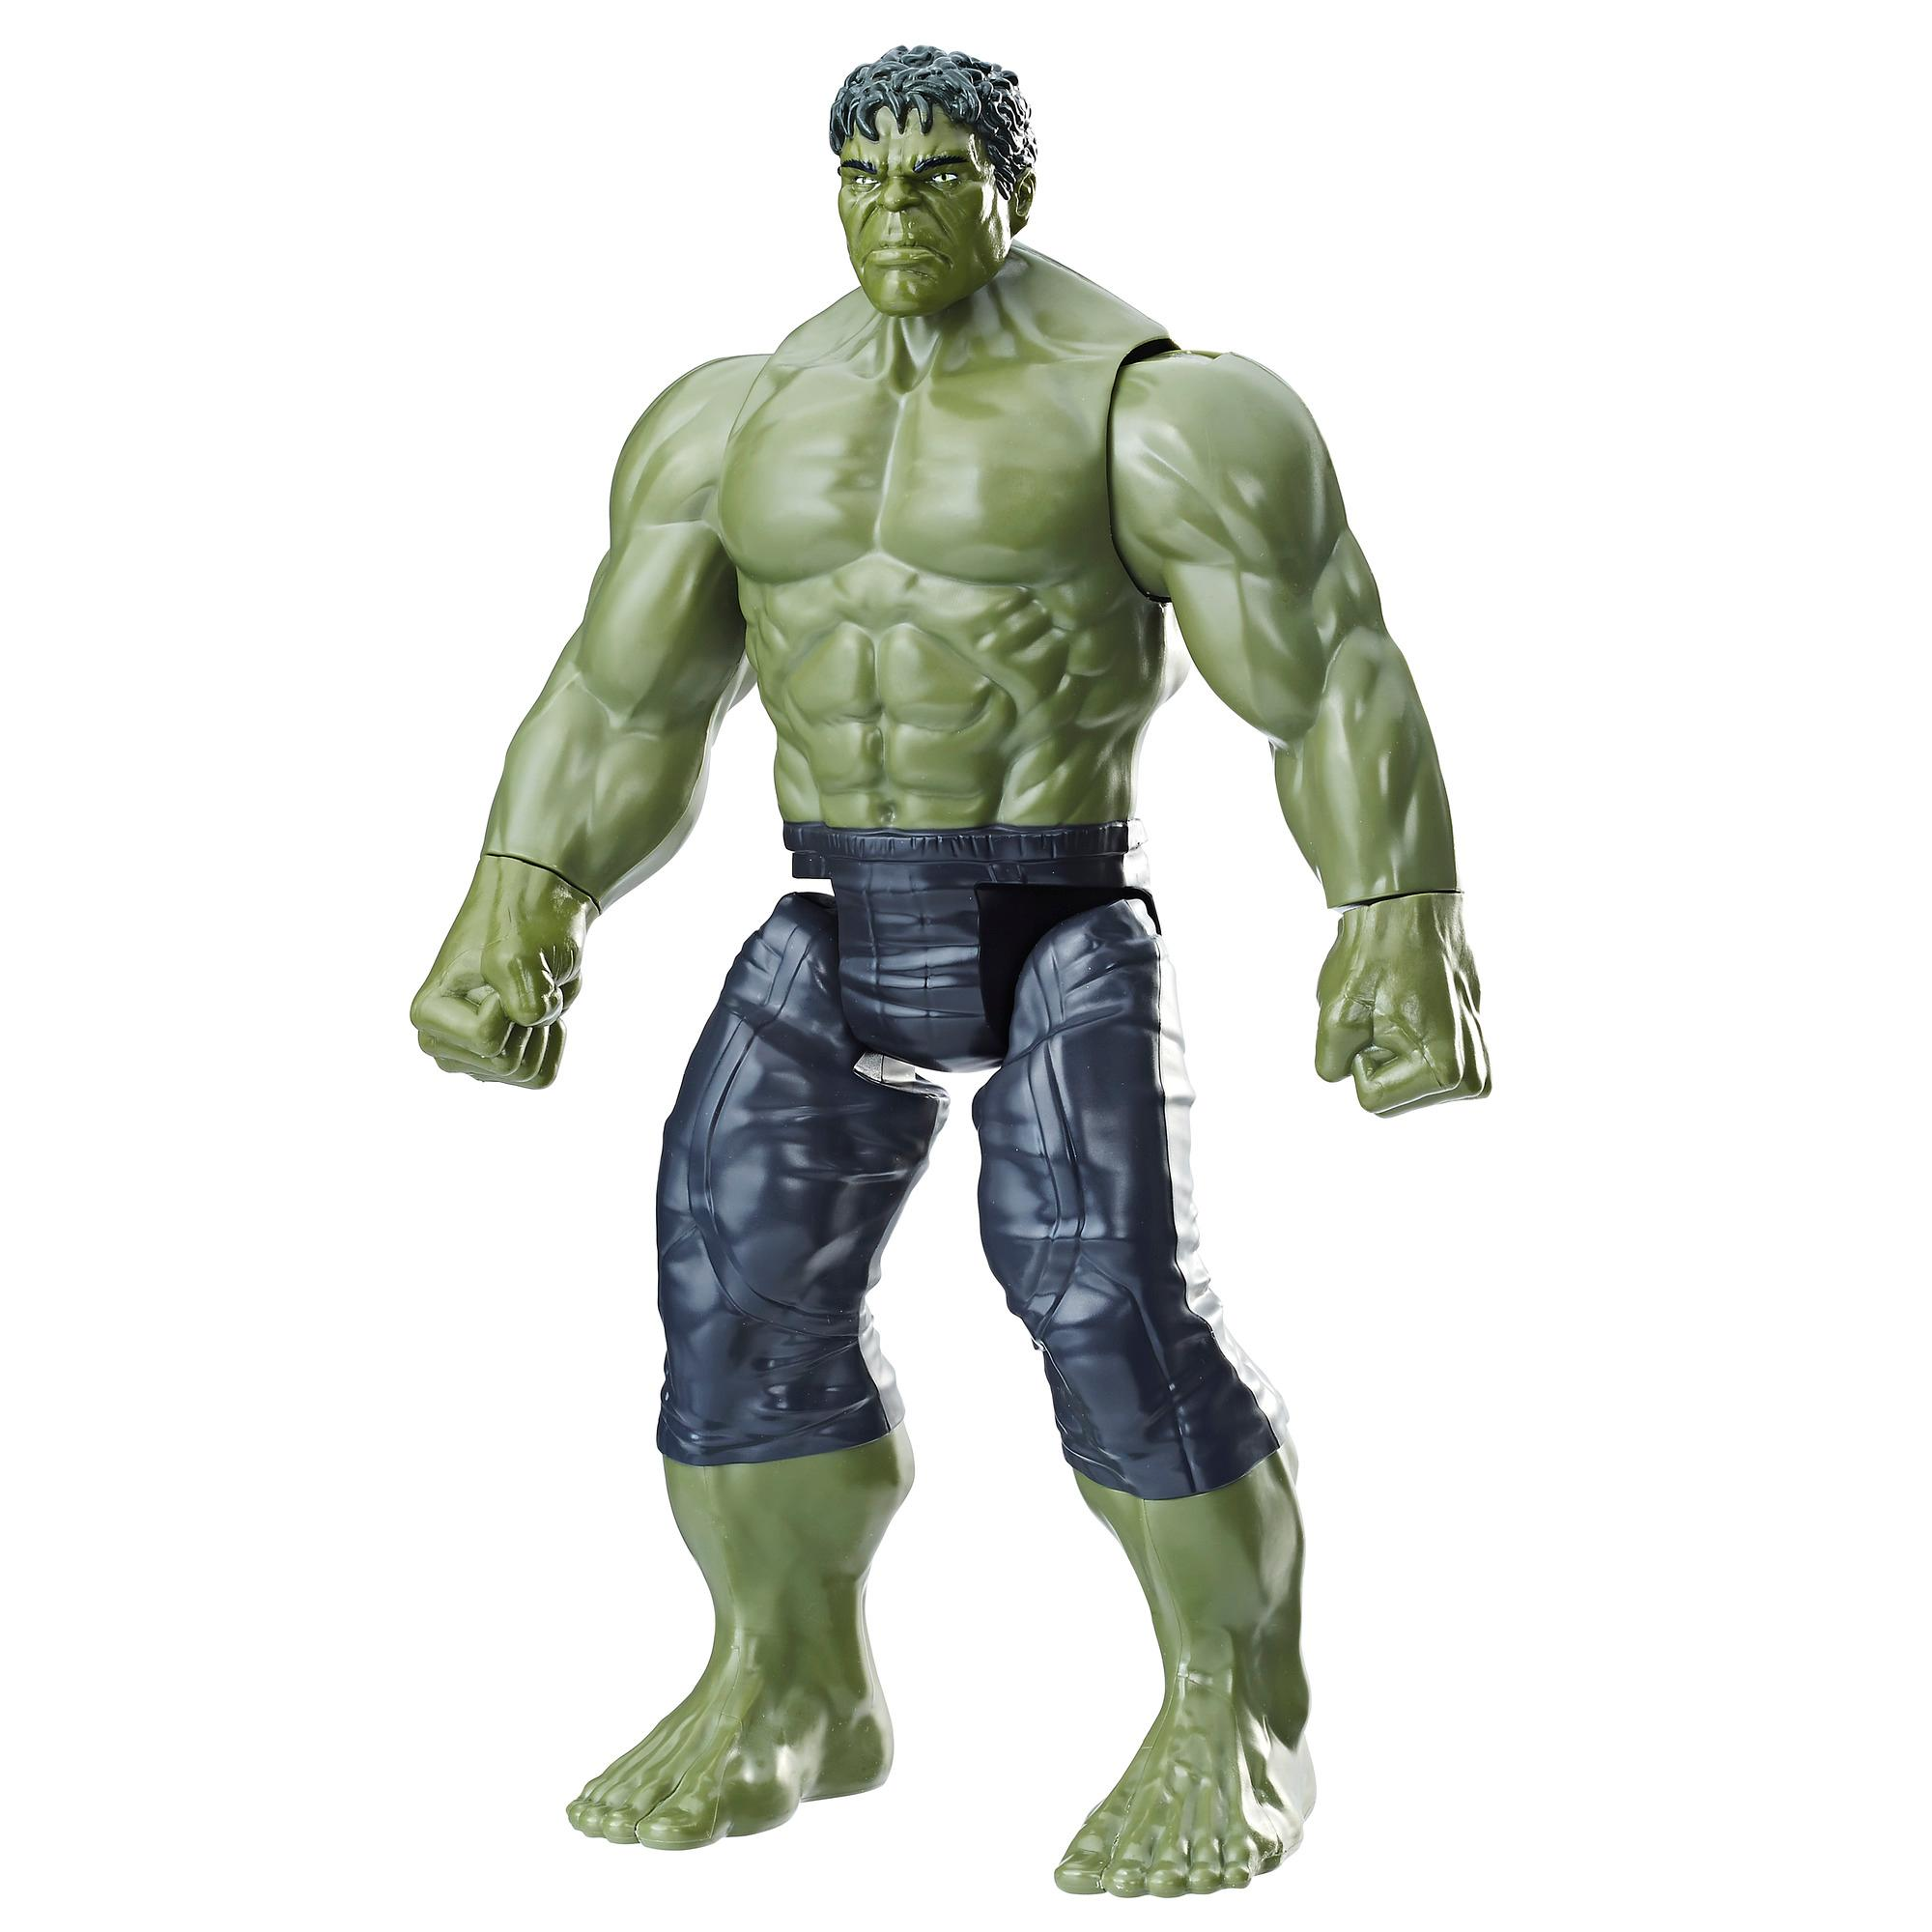 Marvel Infinity War Titan Hero Series - Hulk con puerto para Titan Hero Power FX